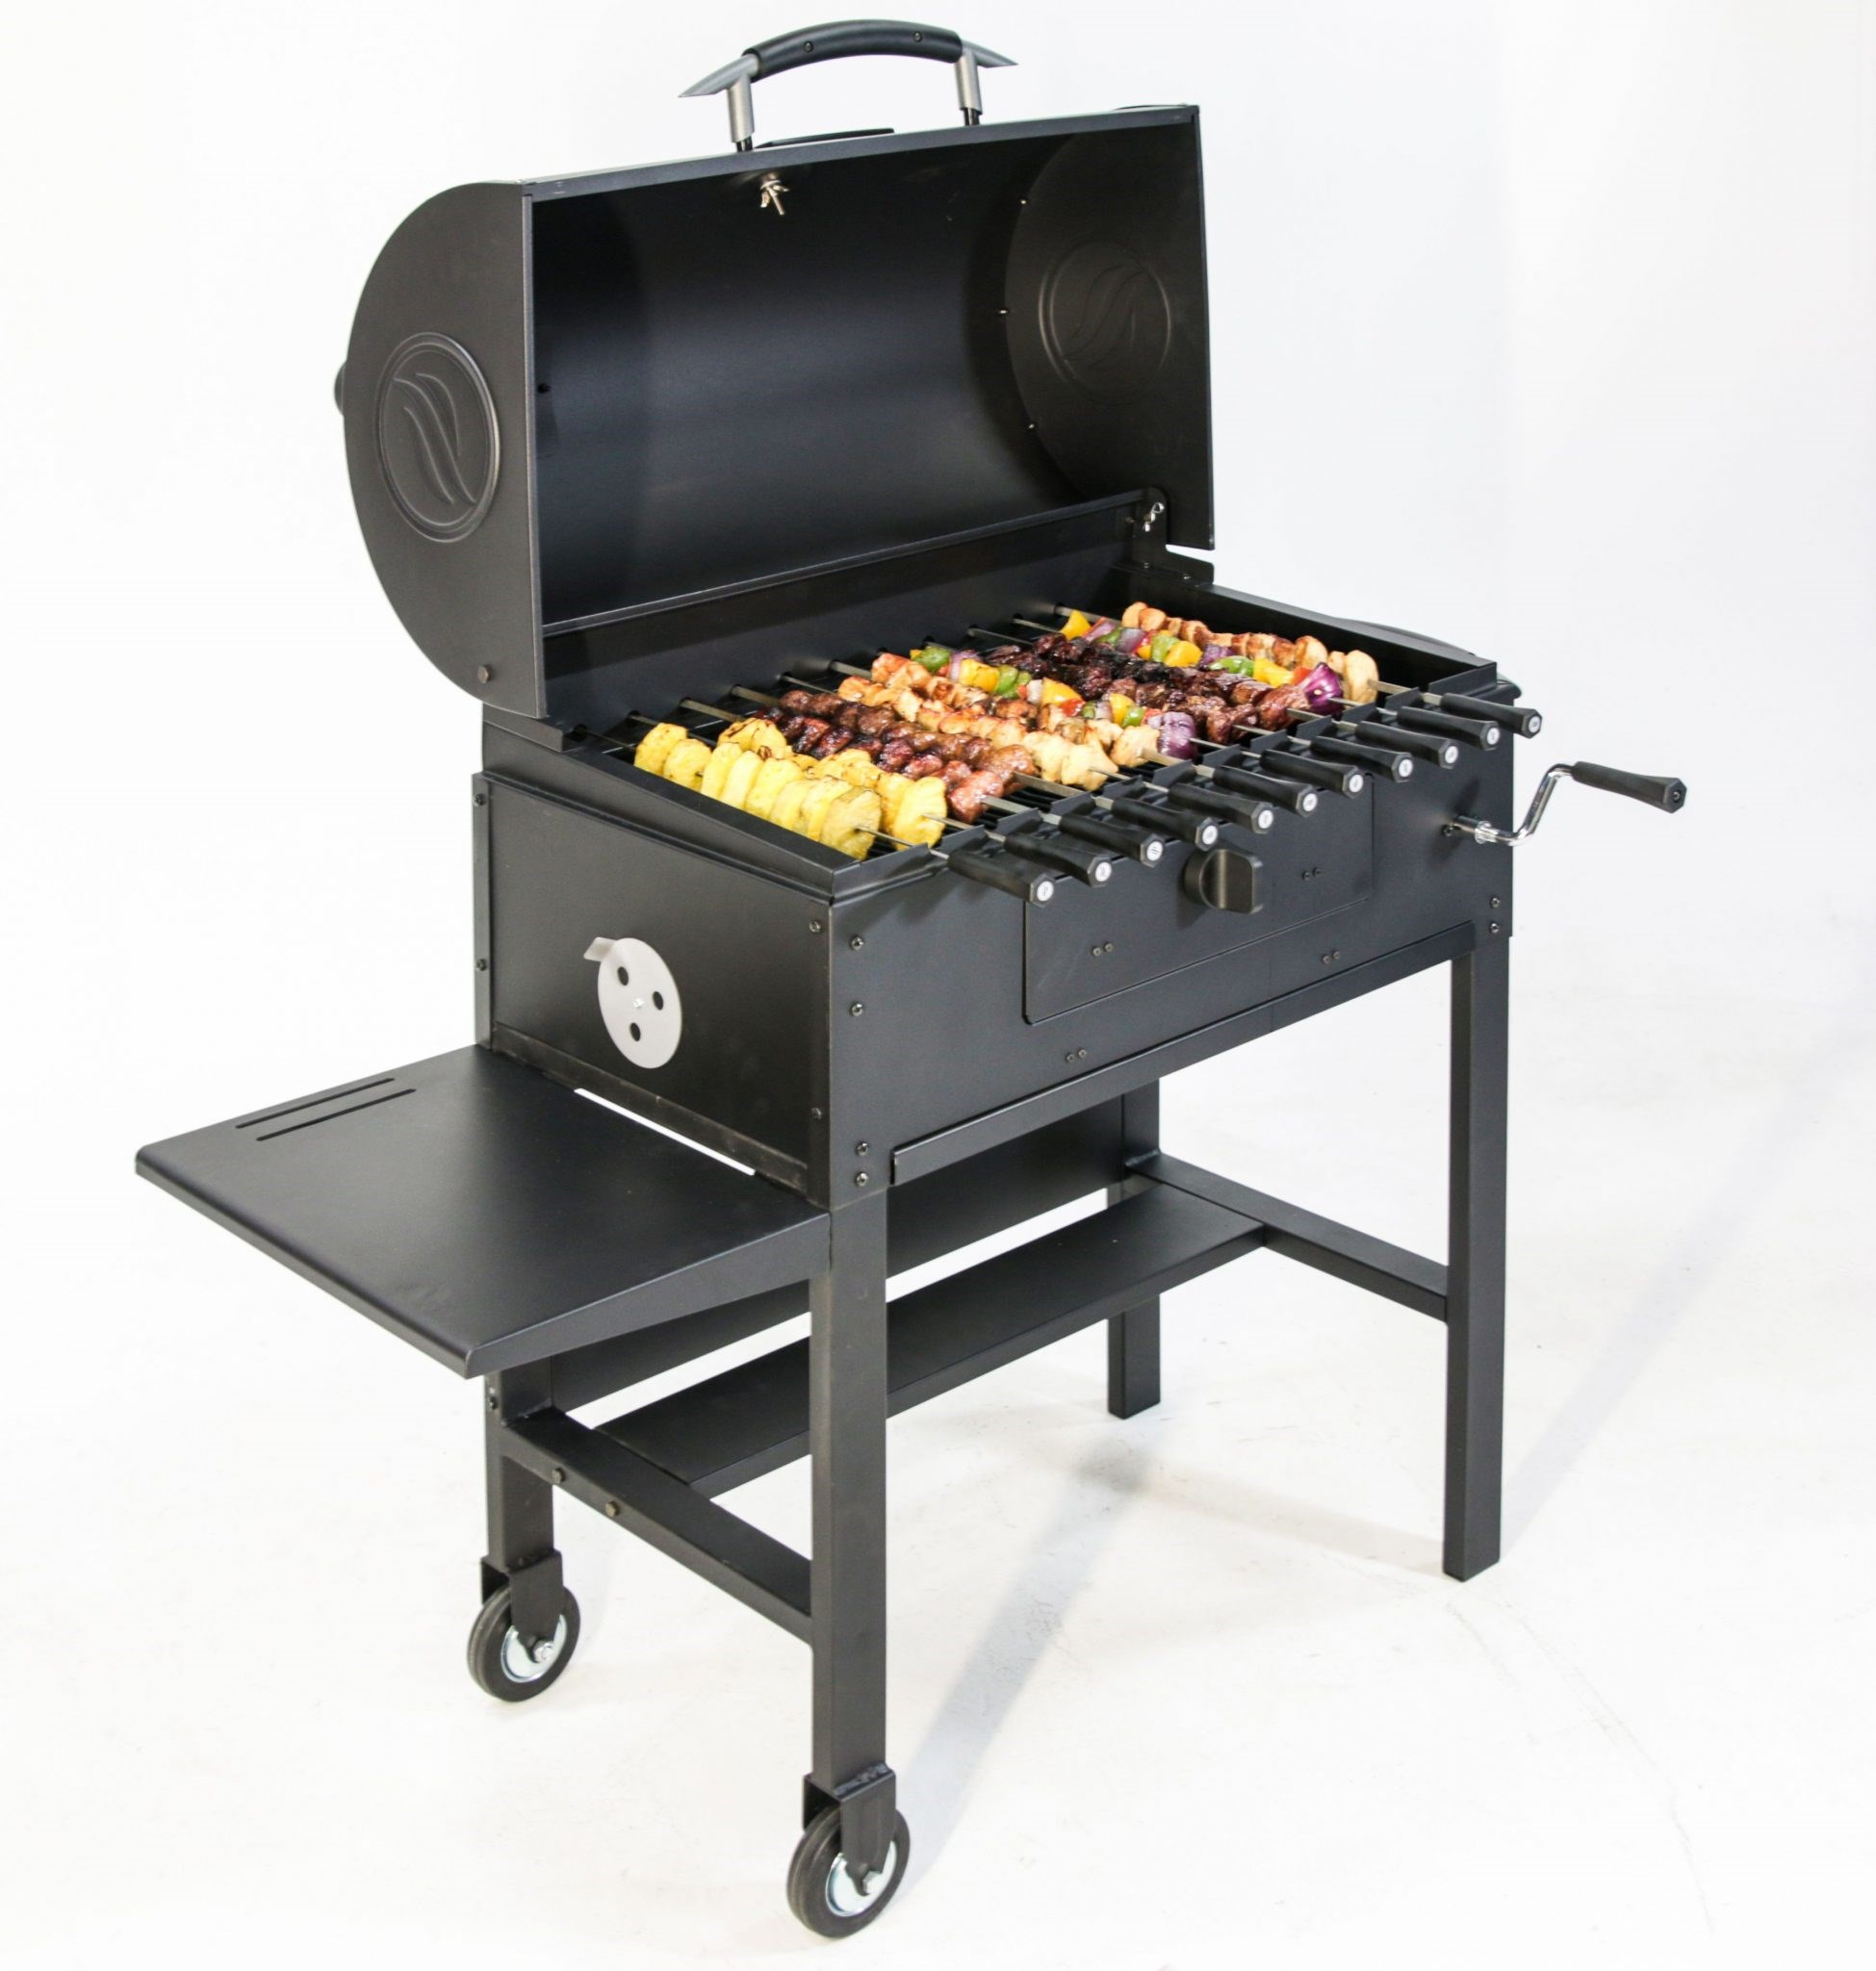 Bring the tasty grilling occasion everyday by choosing this durable Kingsford Ranchers XL Charcoal Grill or Smoker in Black